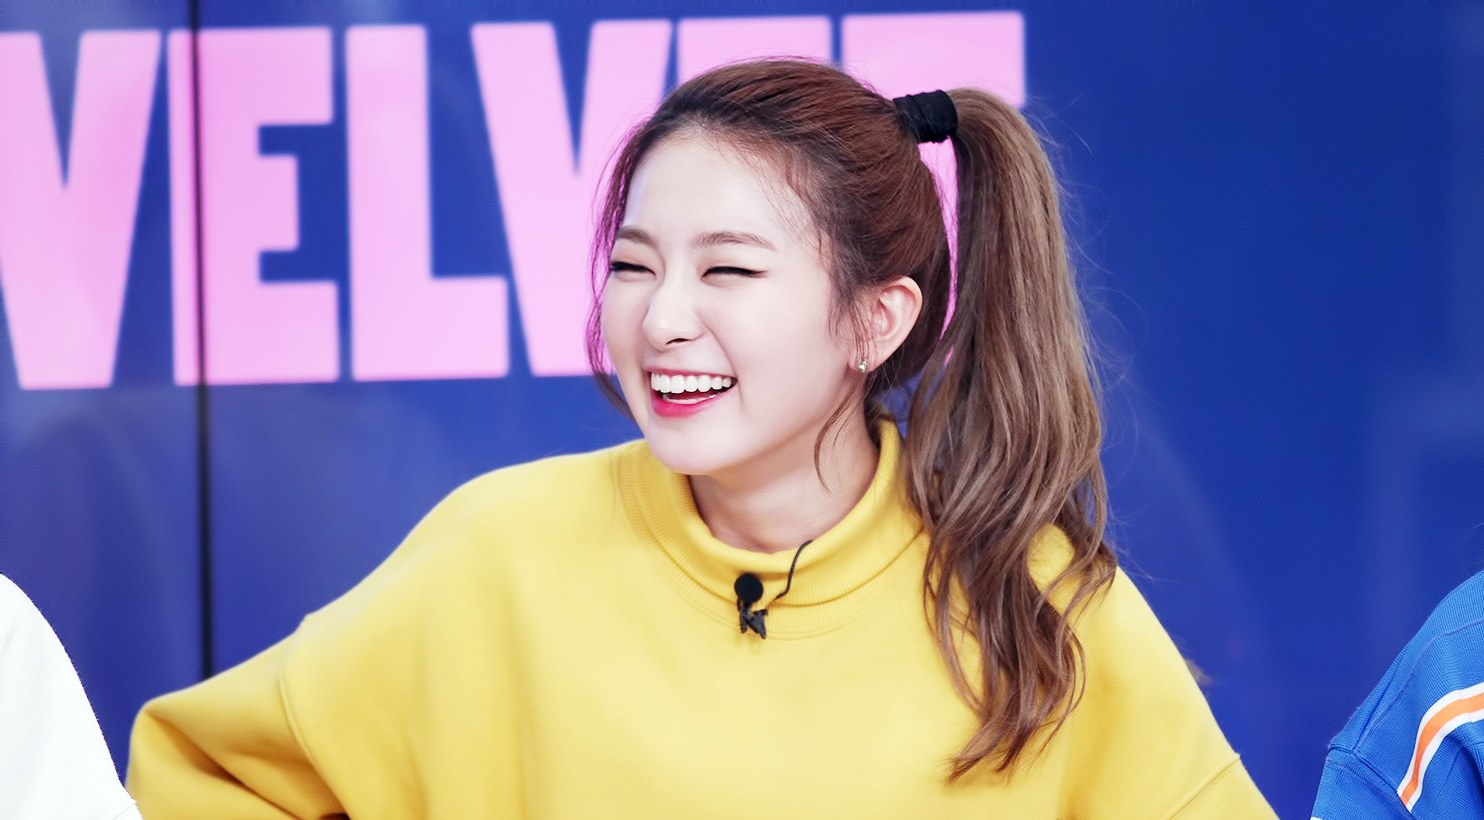 seulgi at fan meet